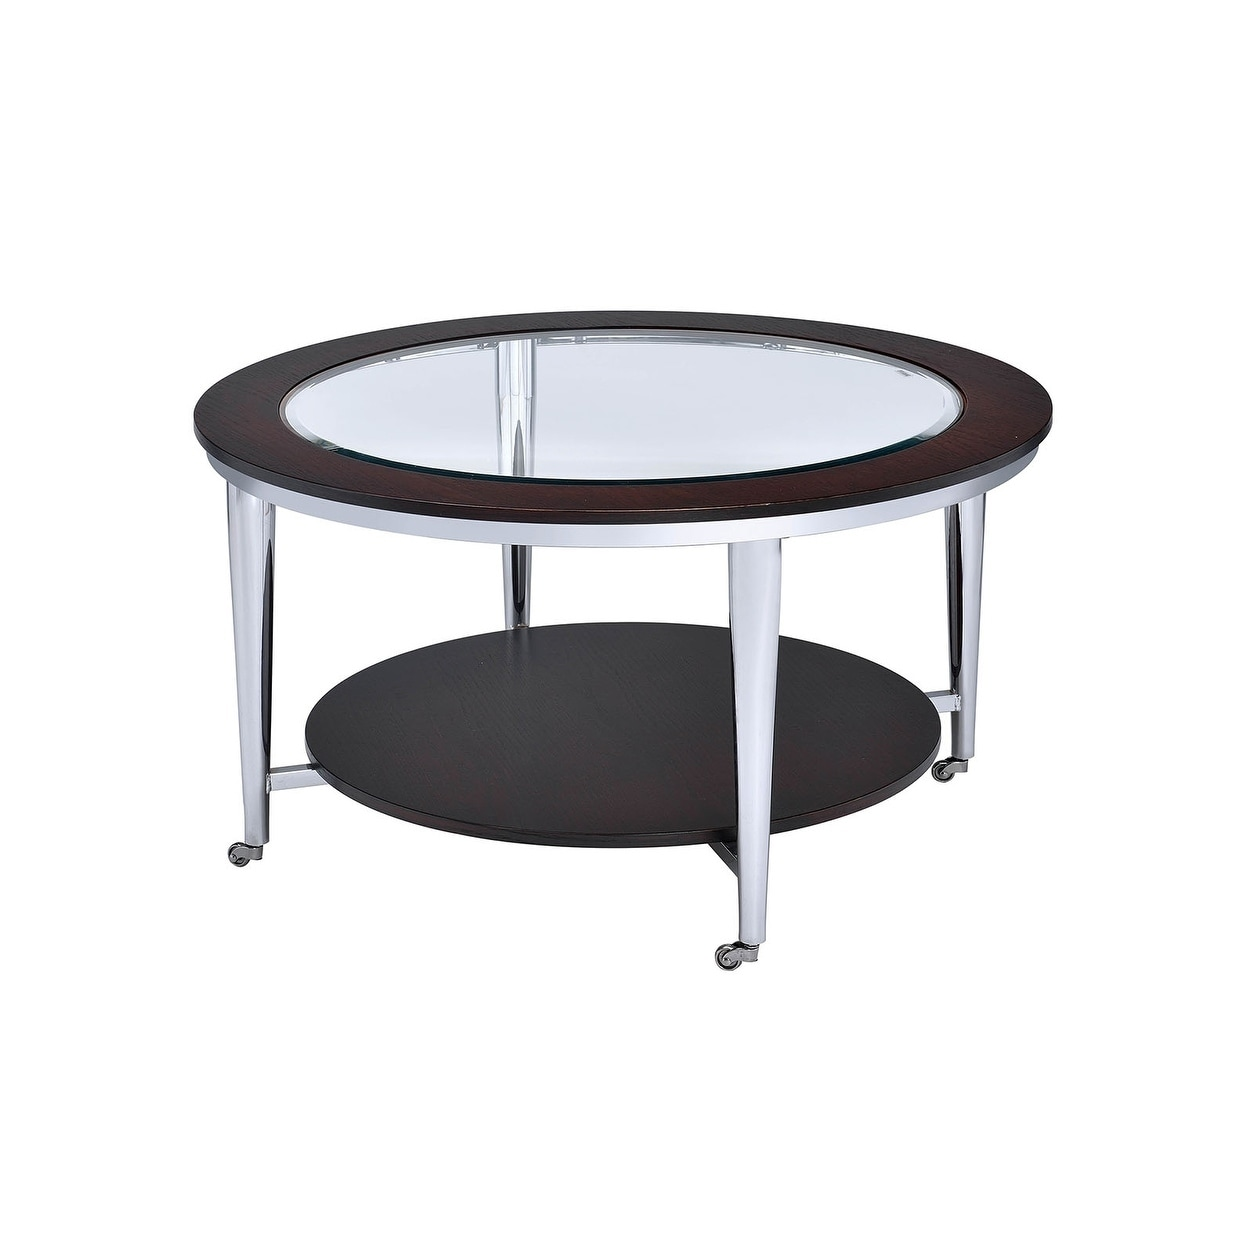 Picture of: Wood And Metal Round Coffee Table With Glass Inserted Top Espresso Brown And Silver On Sale Overstock 24115916